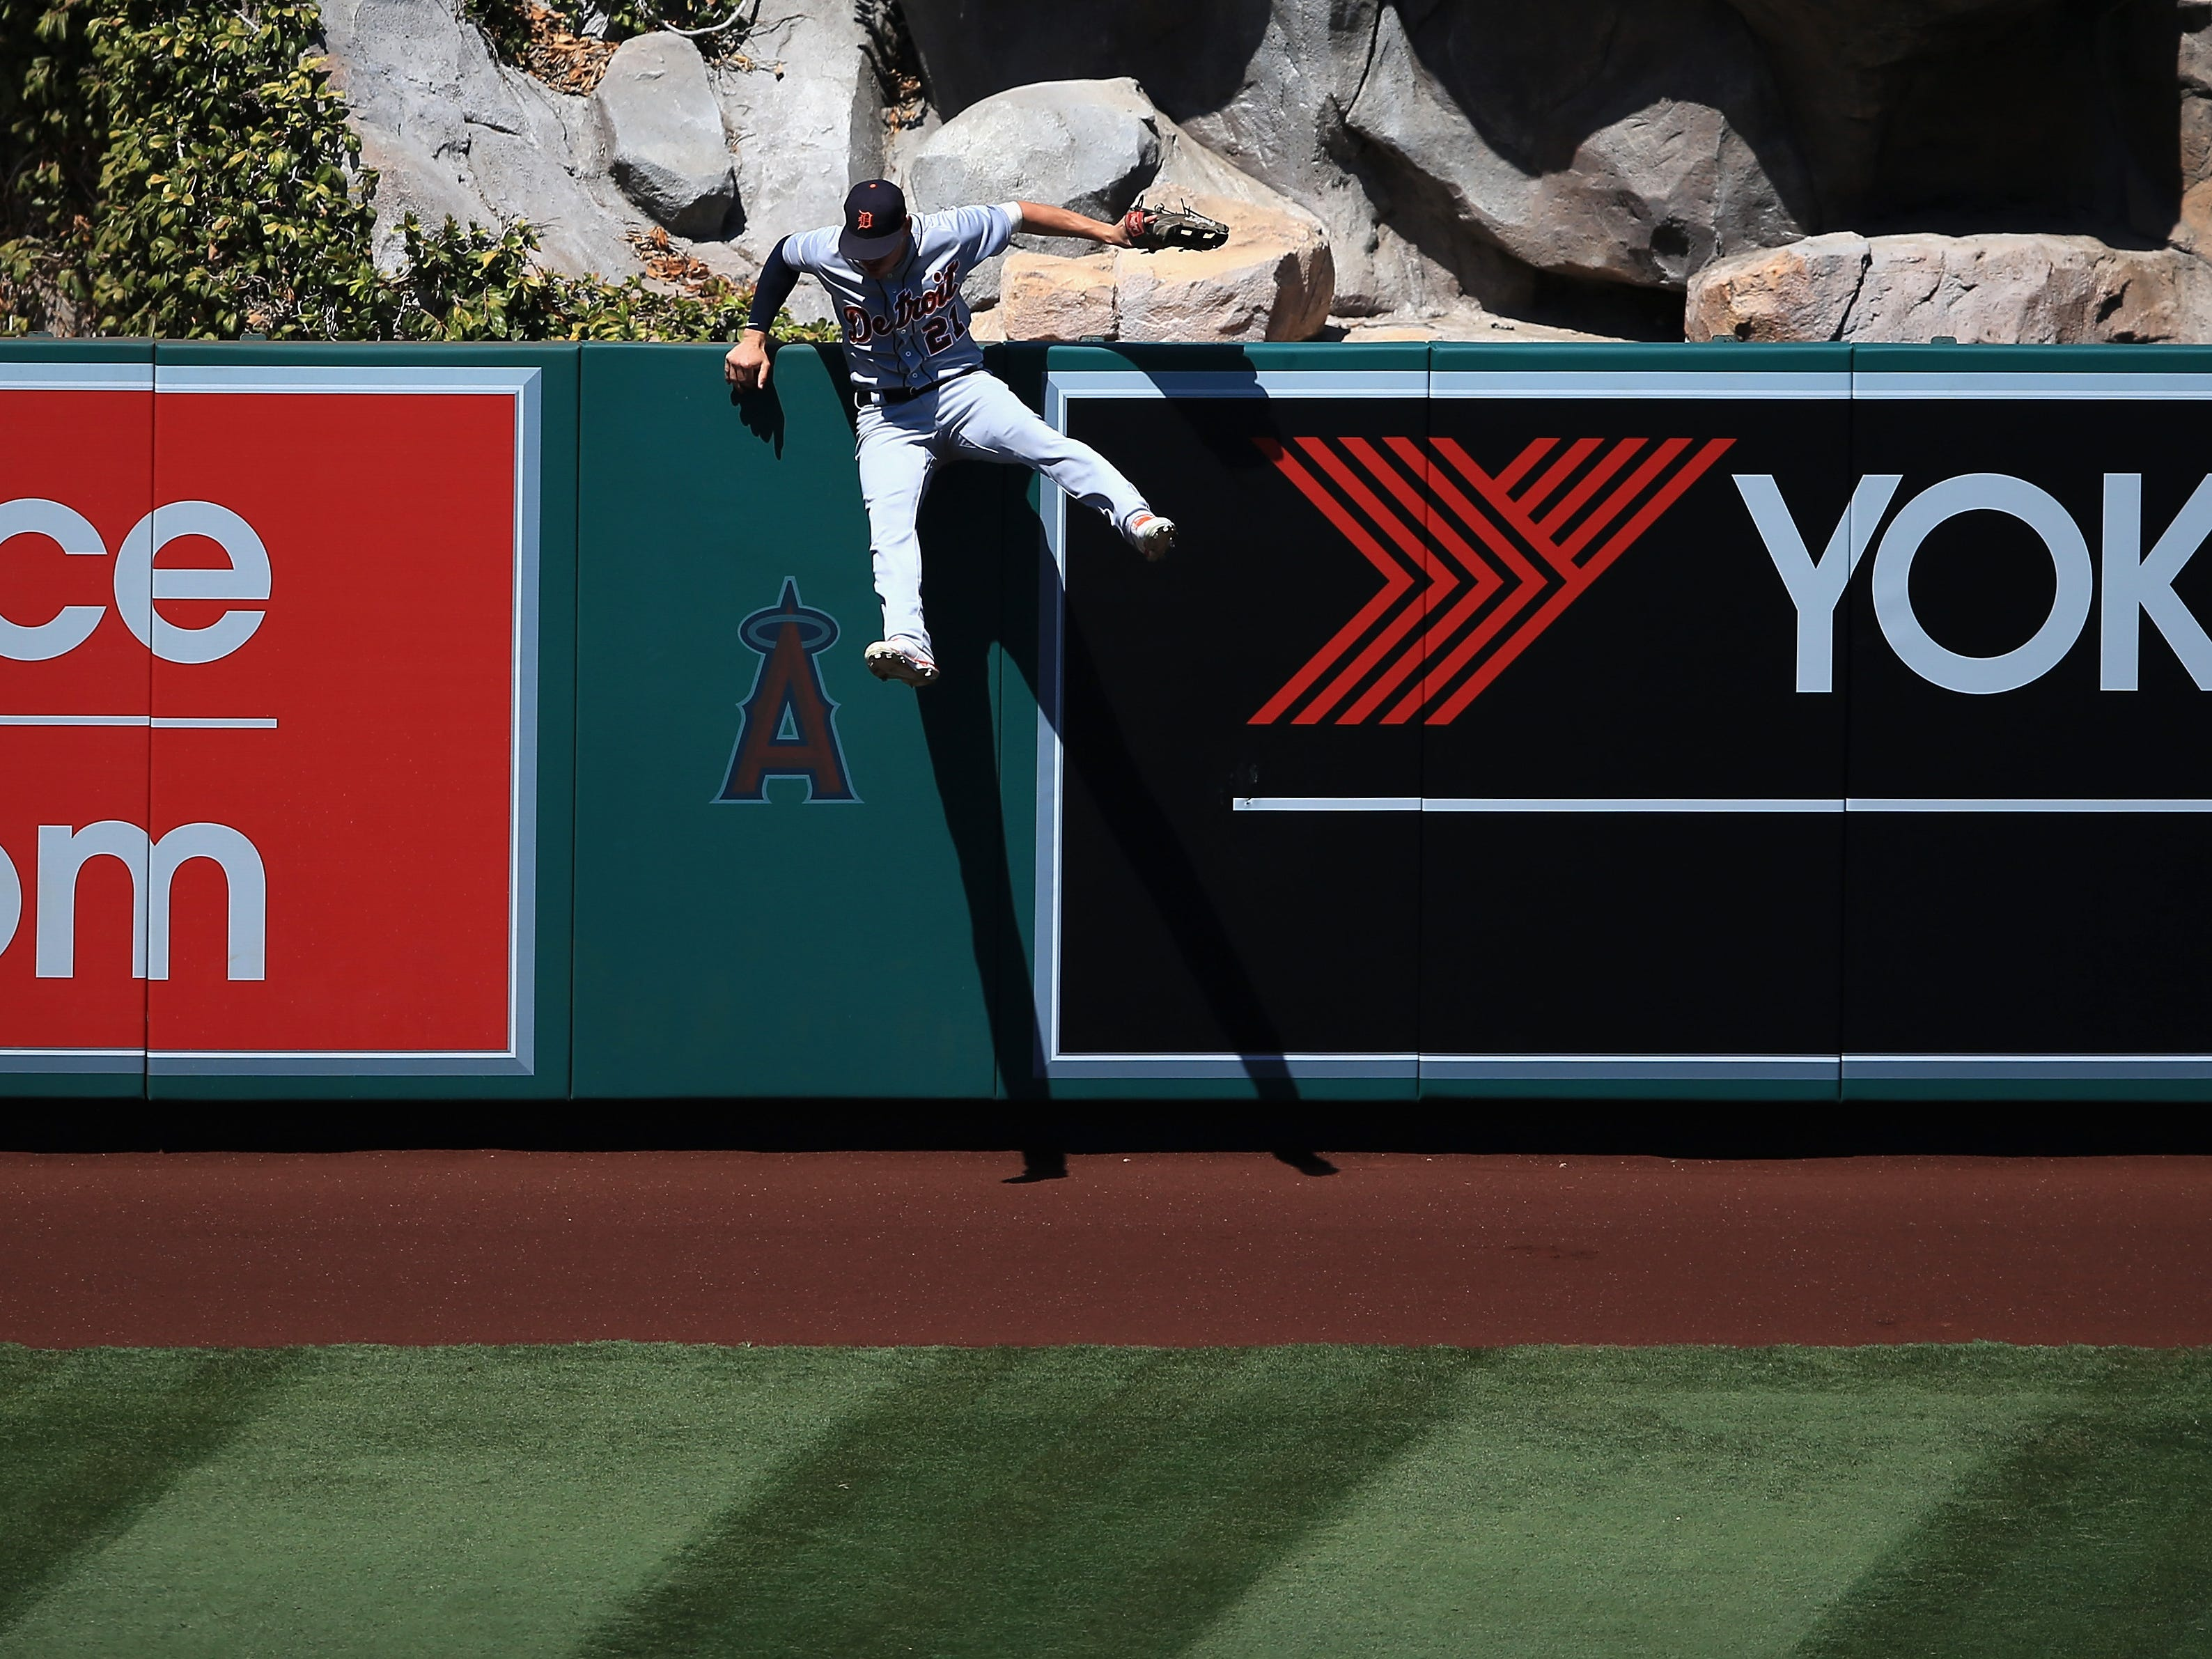 JaCoby Jones of the Detroit Tigers hits the wall trying to catch a solo home run hit by Albert Pujols of the Los Angeles Angels during the fifth inning at Angel Stadium on Aug. 8, 2018 in Anaheim, Calif.